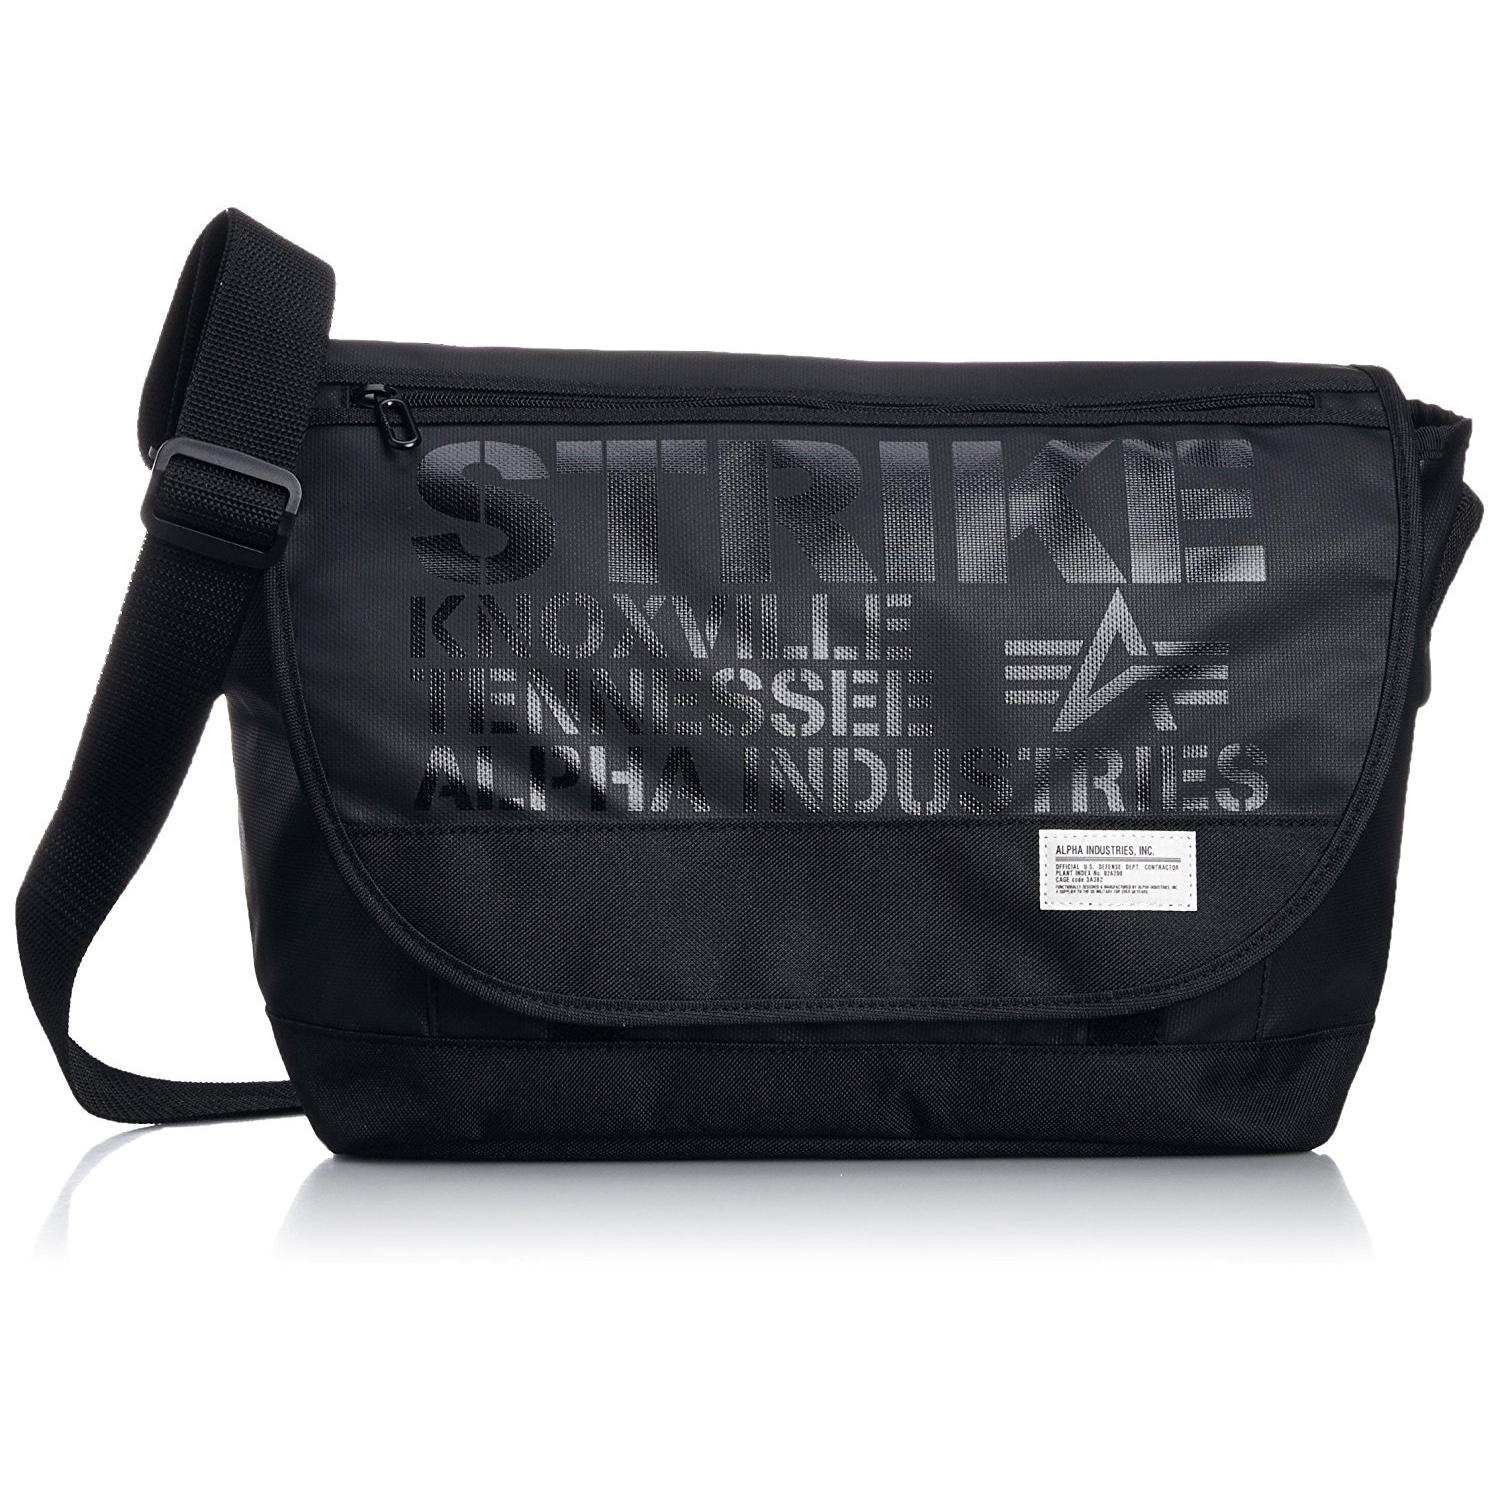 Alpha Industries Premium Quality Messenger Bag Unisex Shoulder Bag Cross Body Bag By Ryan&rayla.